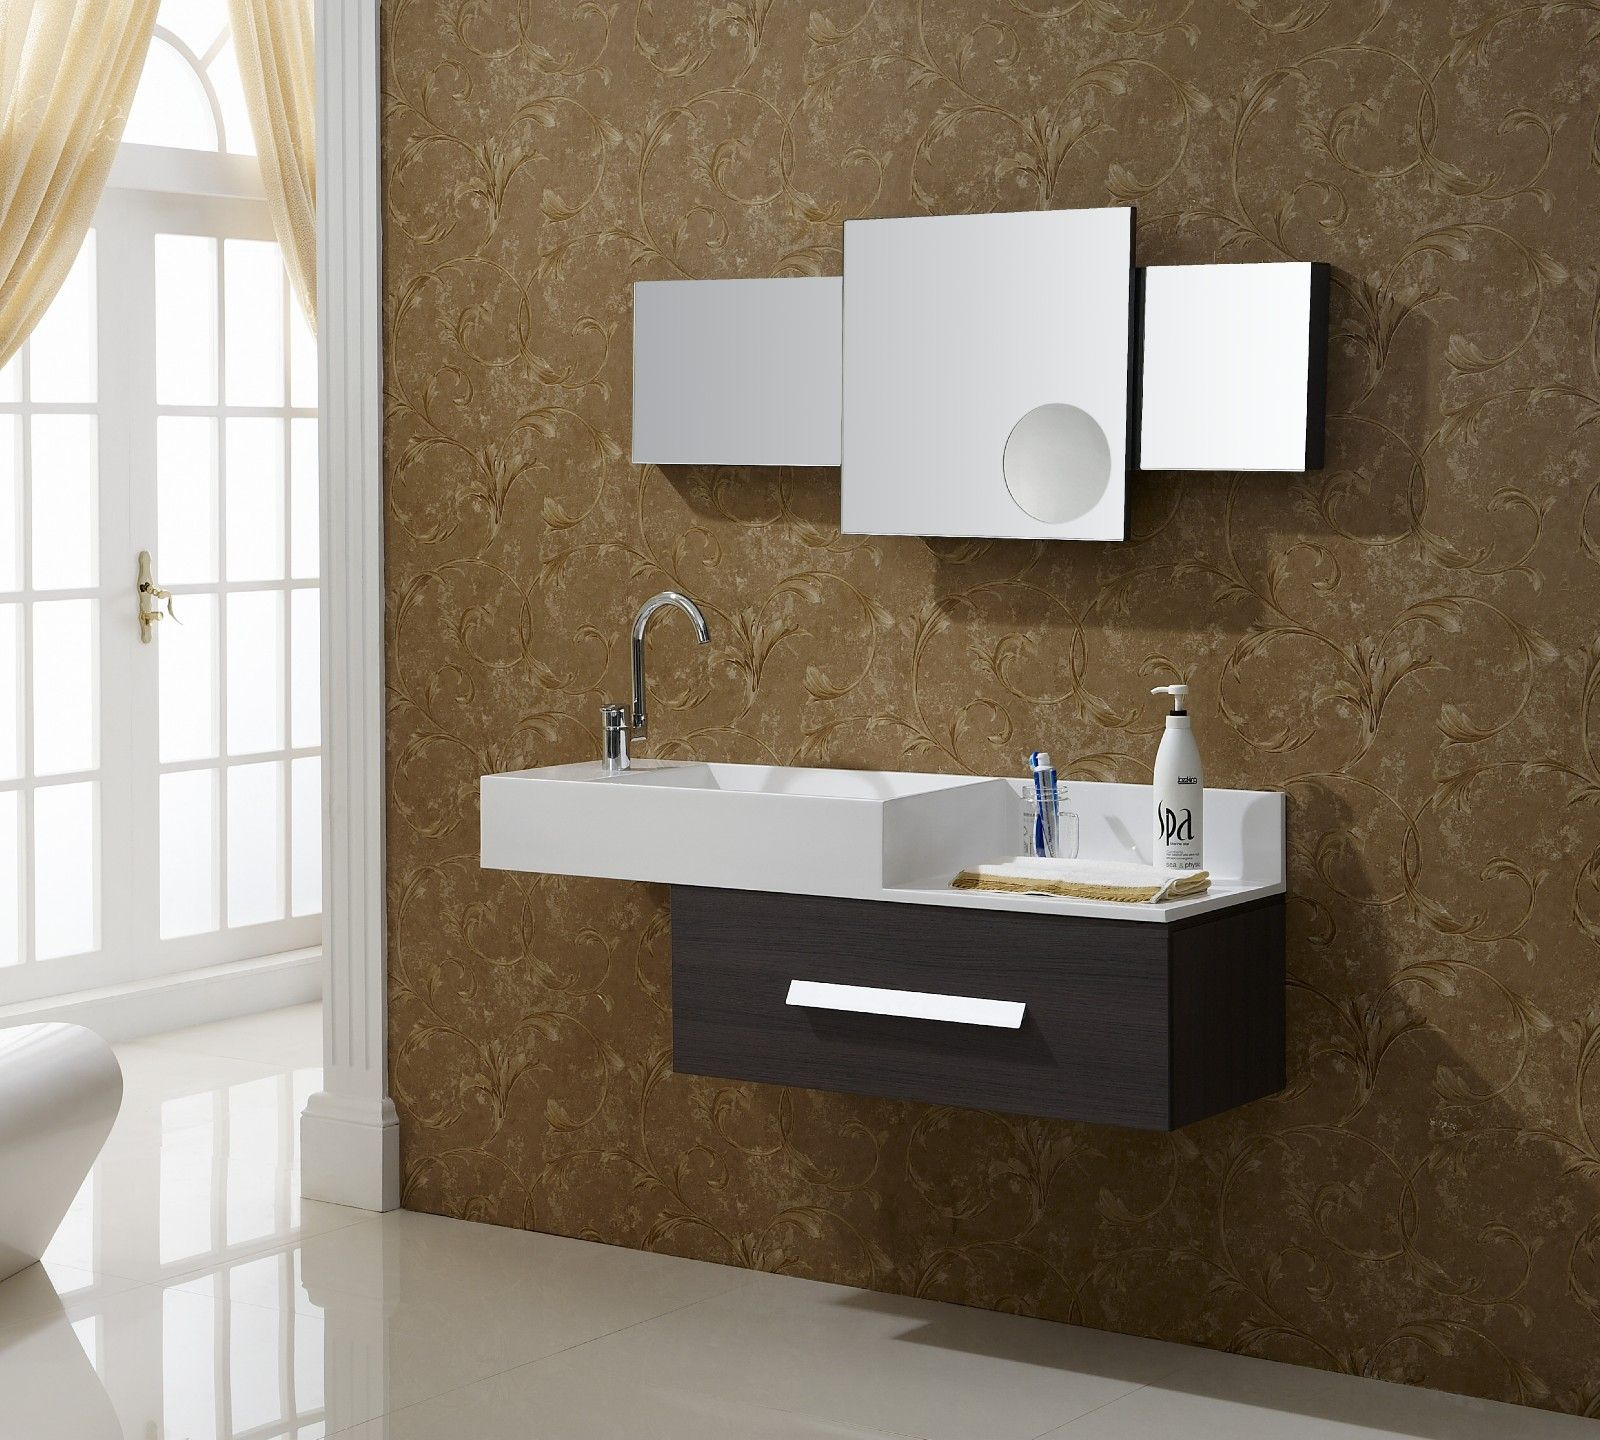 fixtures plus white x lighting ideas chair bathroom hanging mounted and vanity large epic cabinet idea makover mirror small bathrooms themes fresh lamps version wall